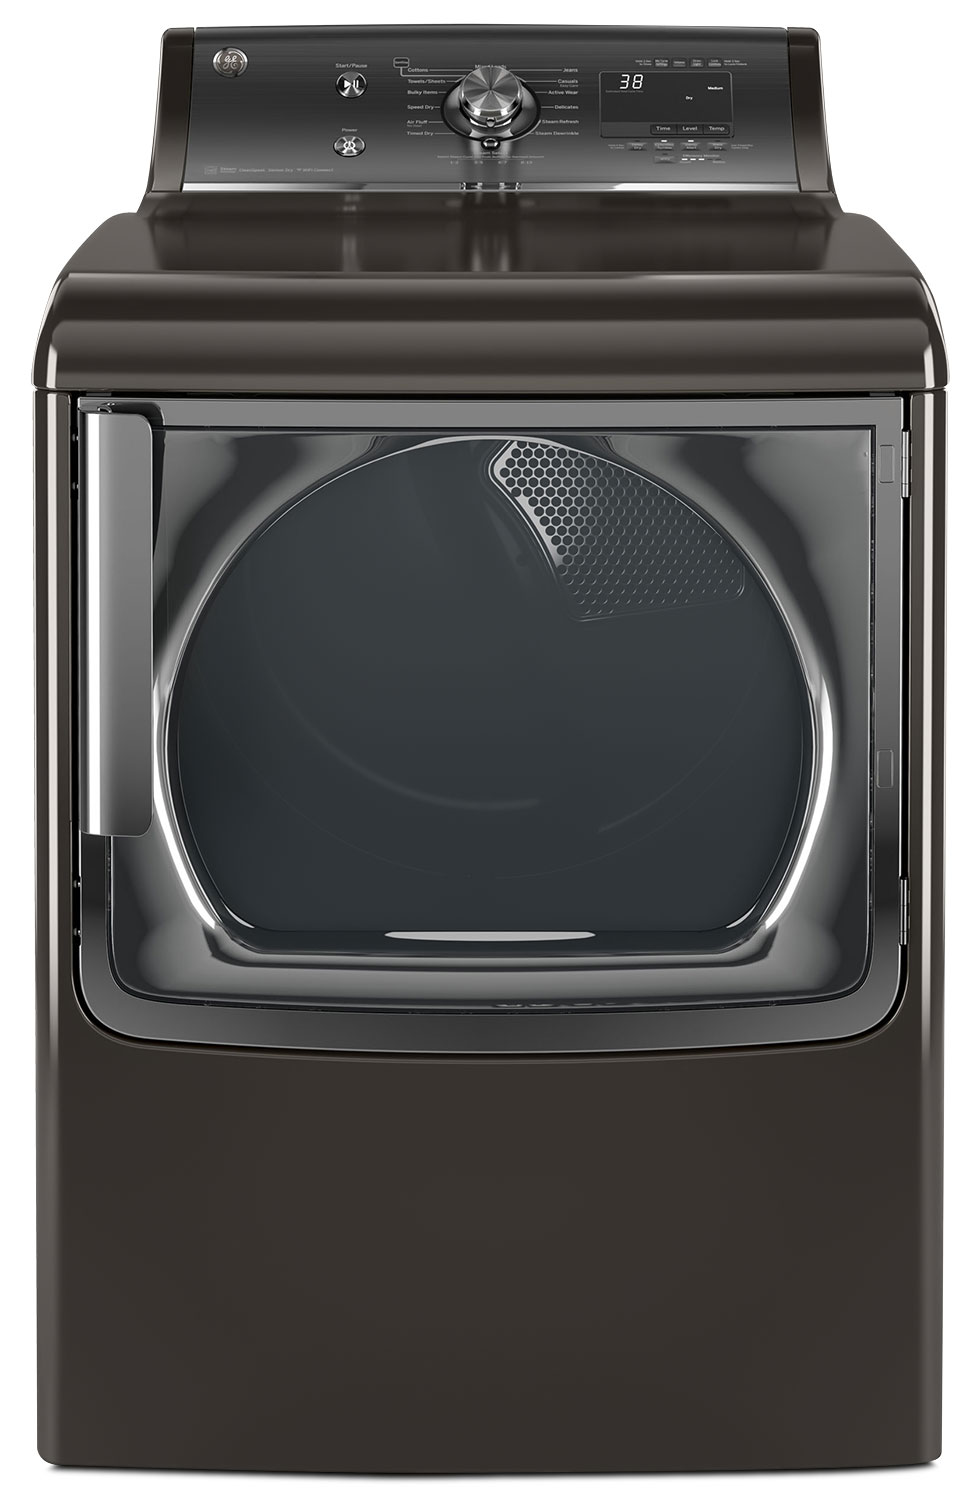 Washers and Dryers - GE 7.8 Cu. Ft. Electric Dryer – GTD86ESMJMC